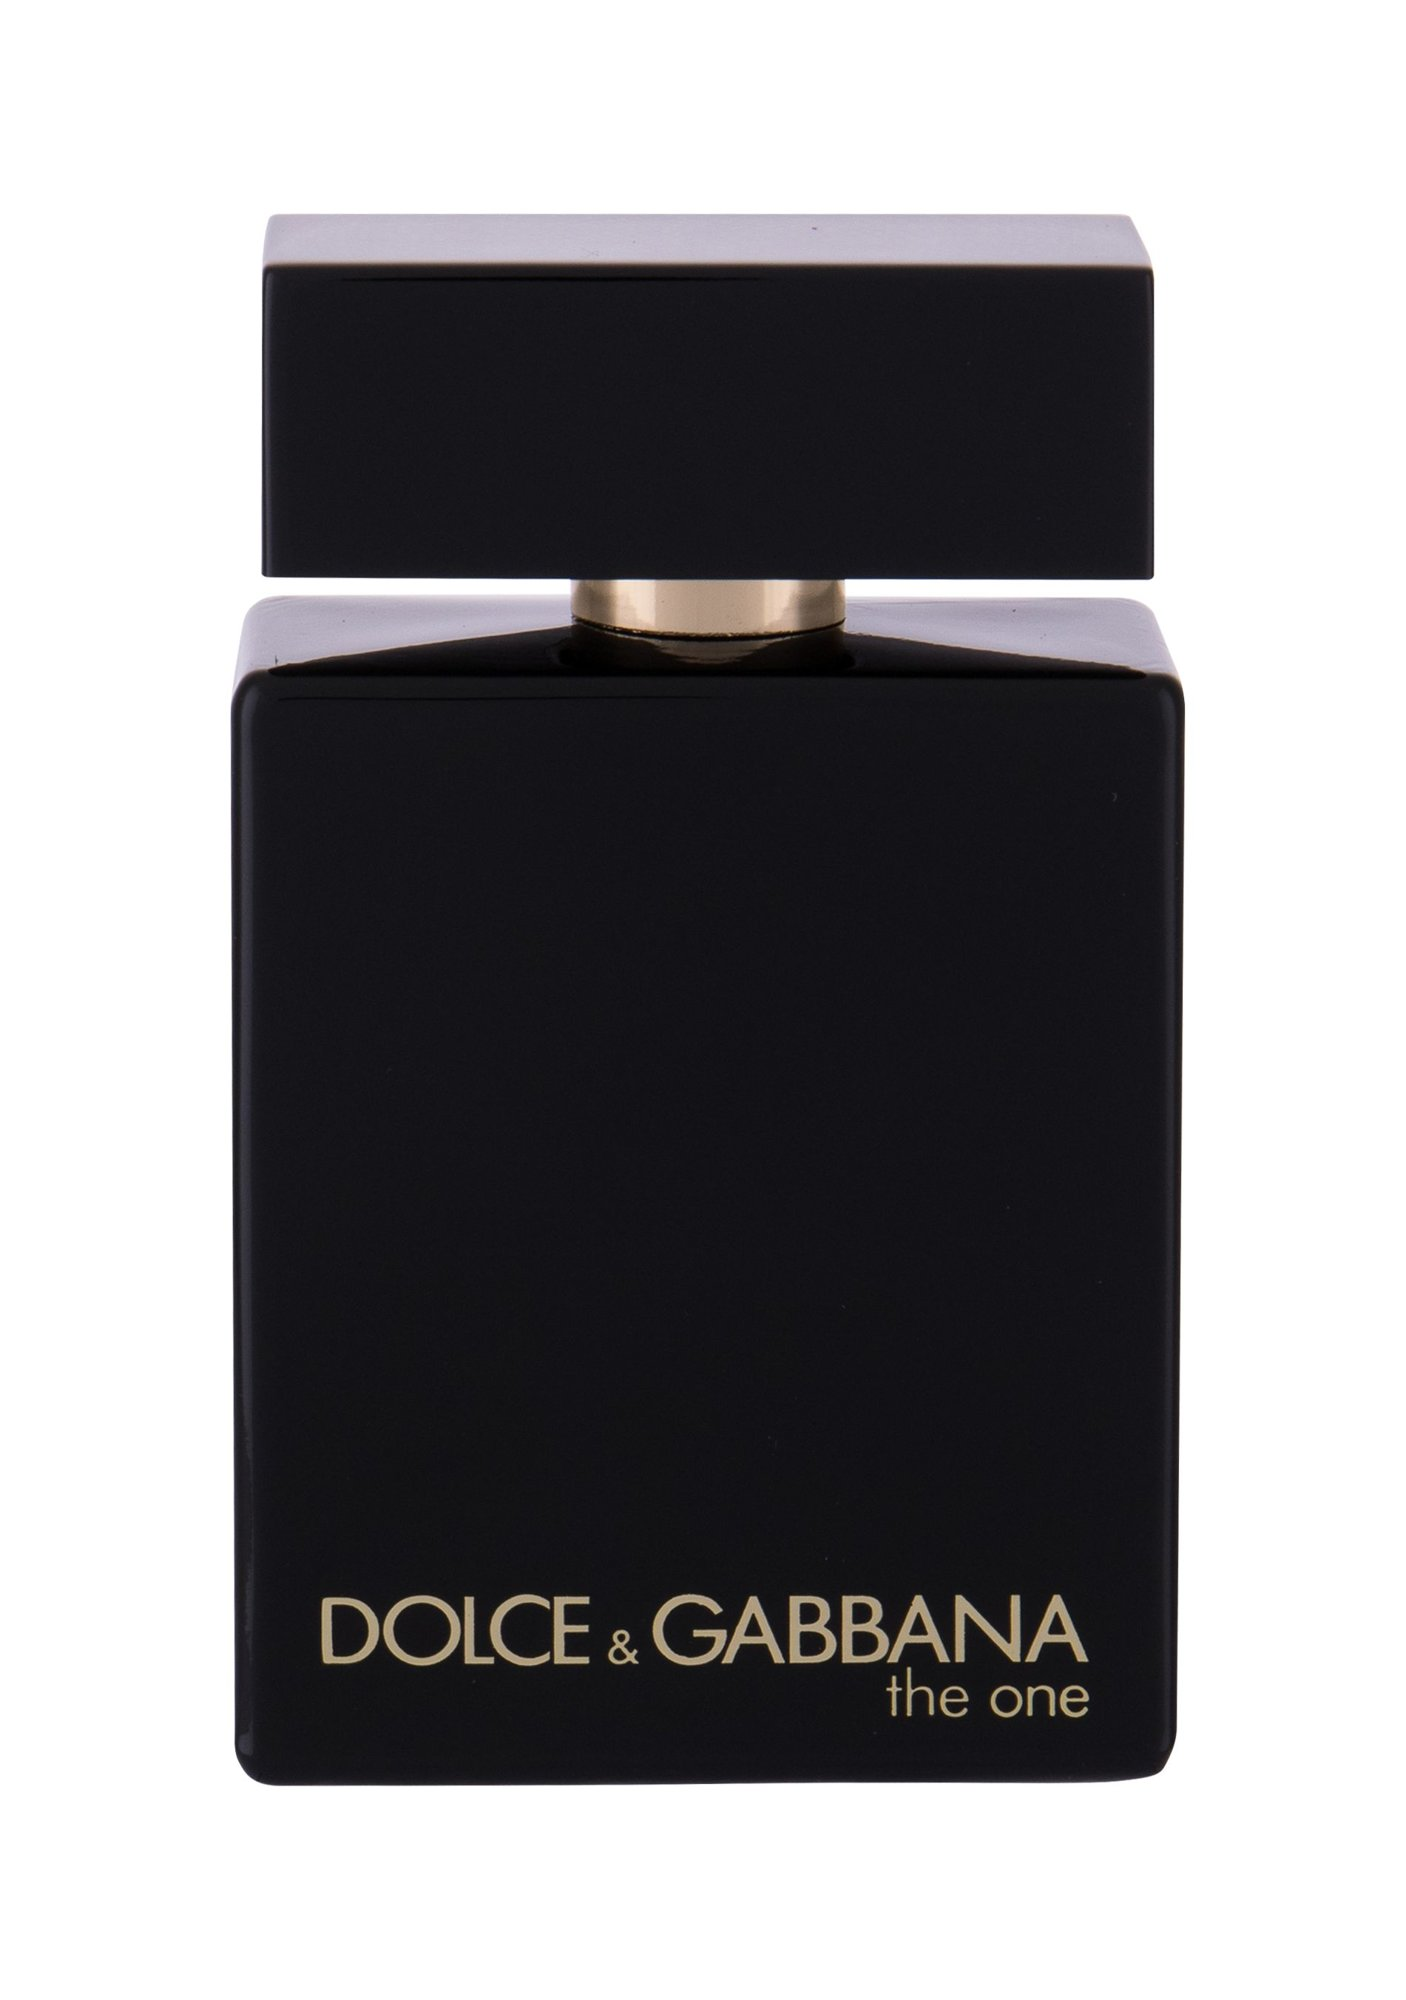 Dolce&Gabbana The One For Men Intense - parfémová voda M Objem: 100 ml